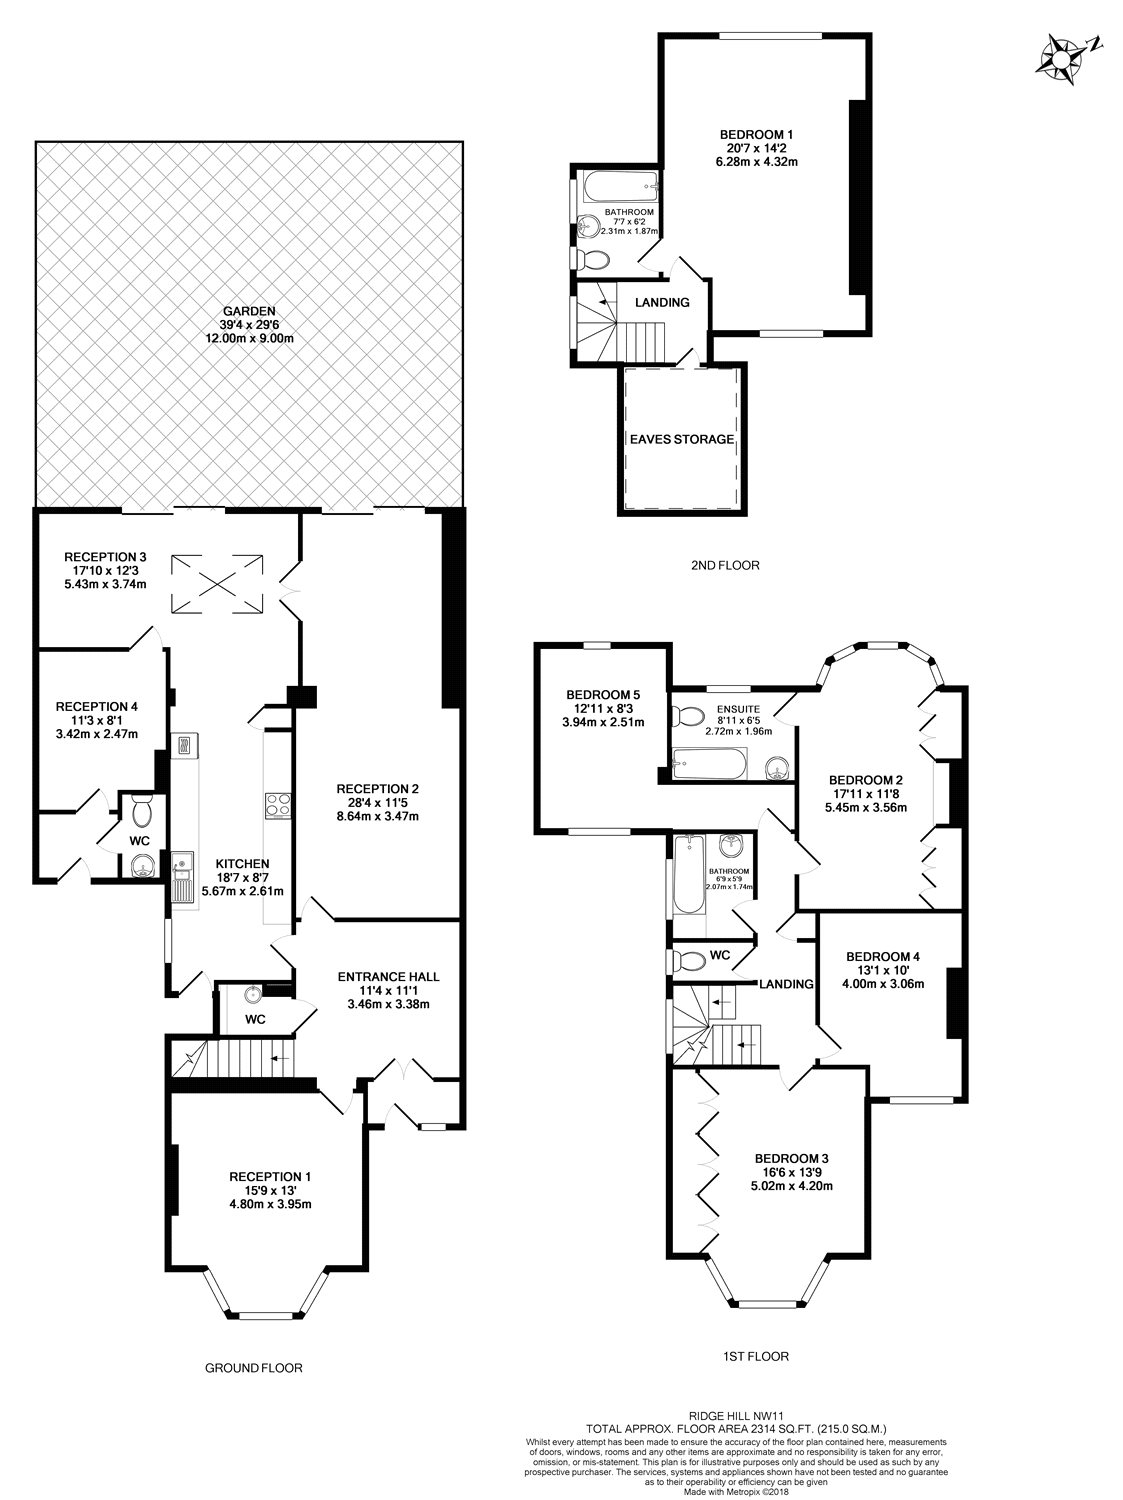 5 Bedrooms Semi-detached house for sale in Ridge Hill, London NW11